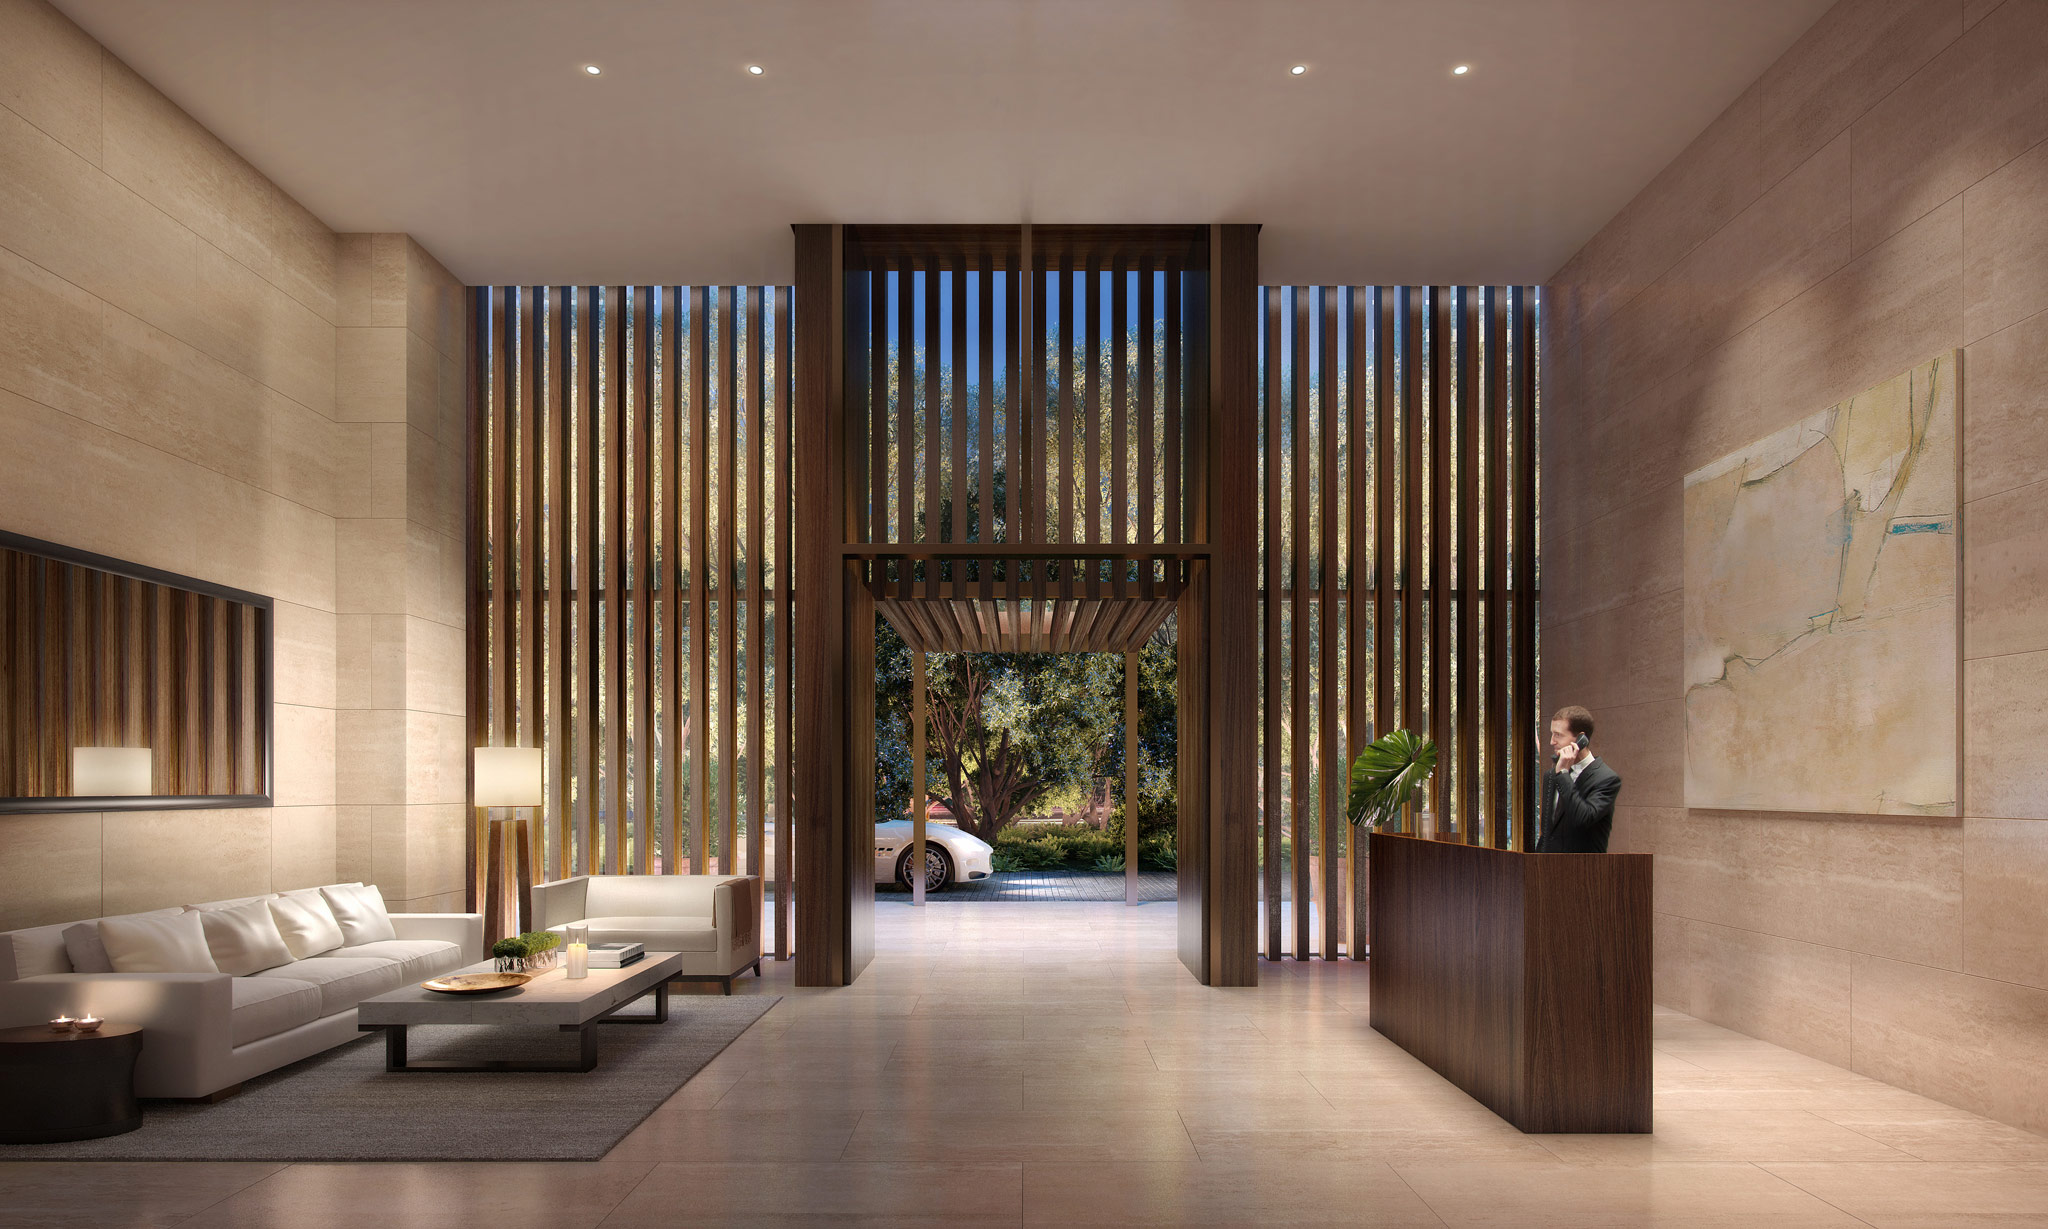 Private 24-hour attended residential lobby